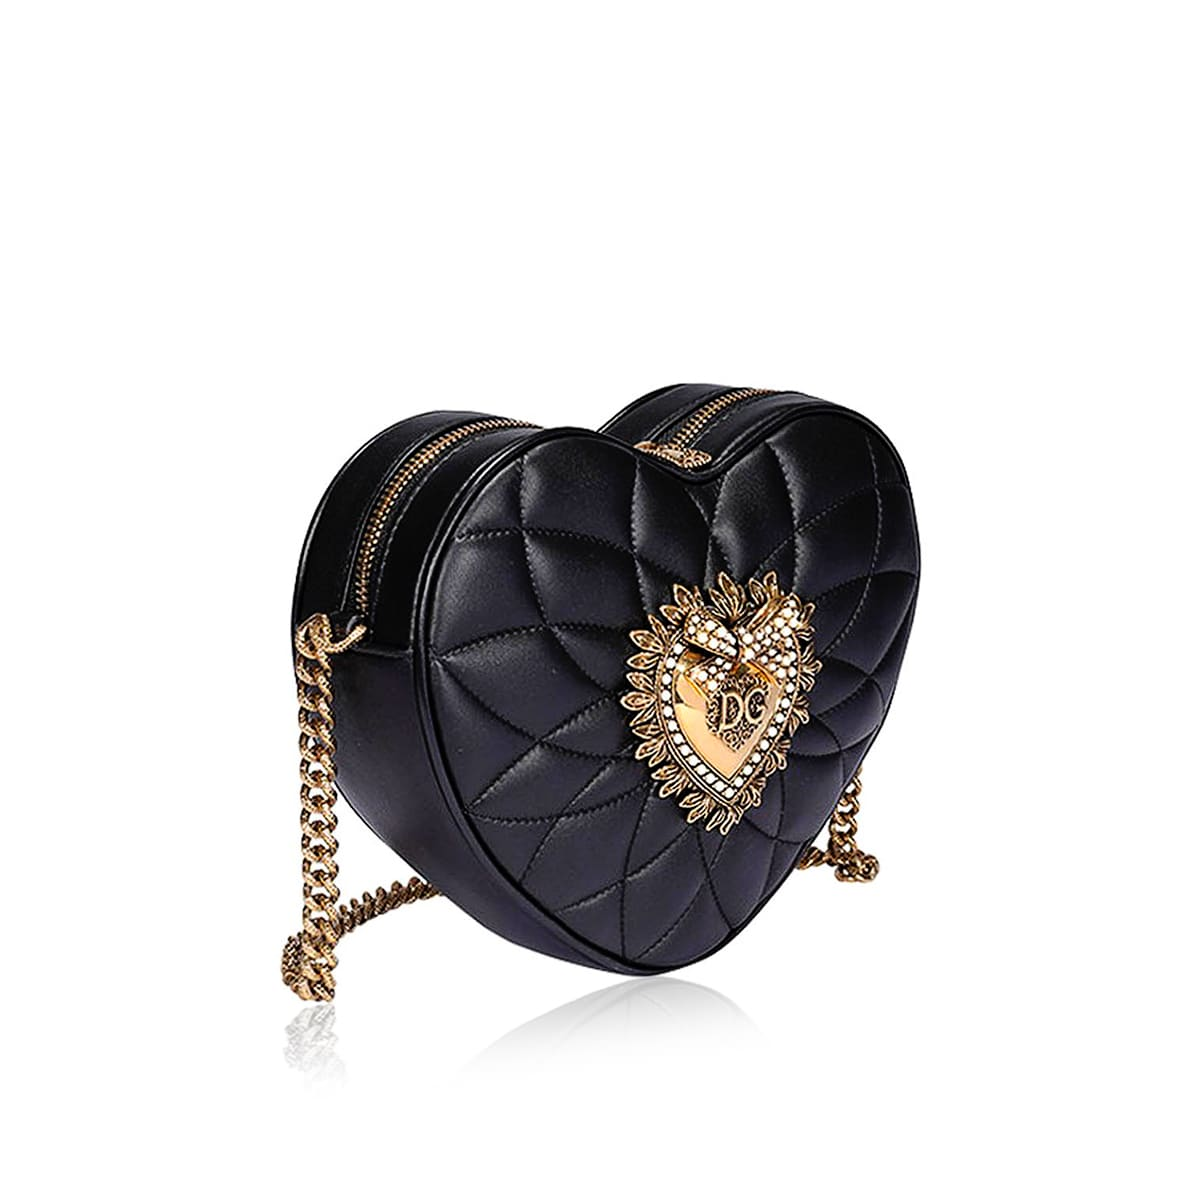 Devotion heart-shaped leather bag